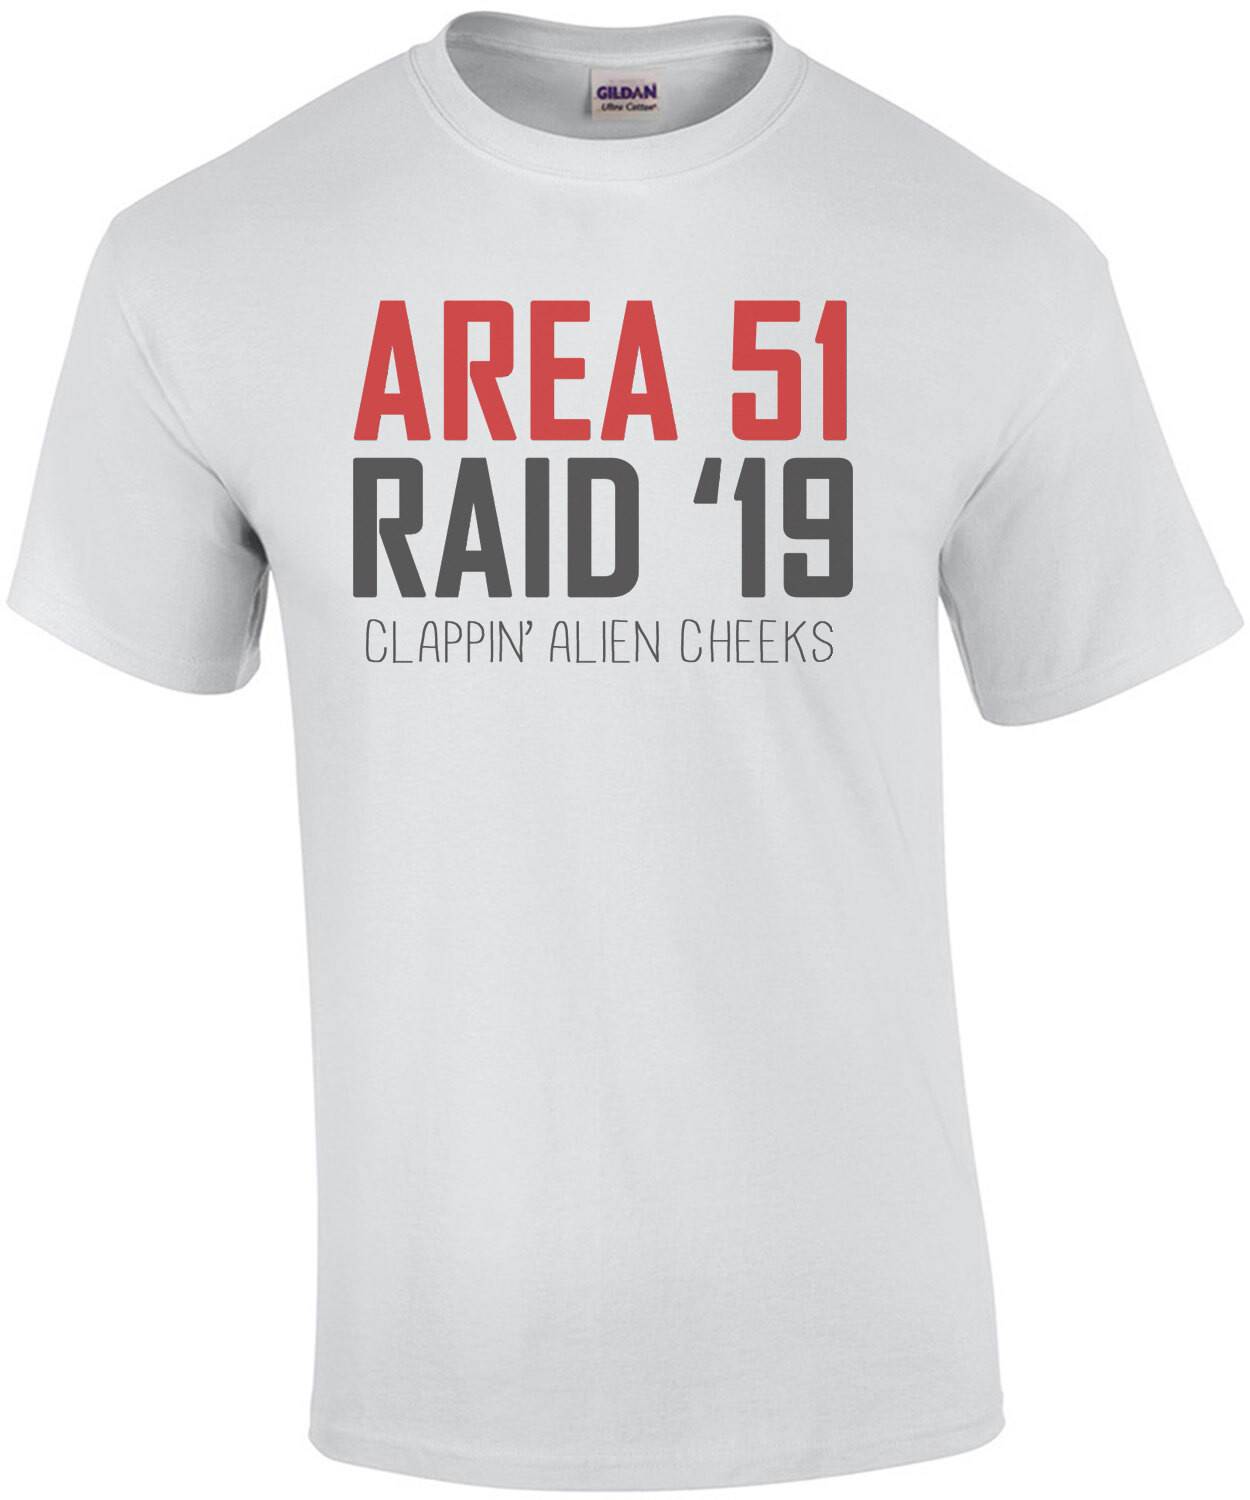 Area 51 2019 Raid - They Can't Stop Us All - Clappin Alien Cheeks Funny Shirt